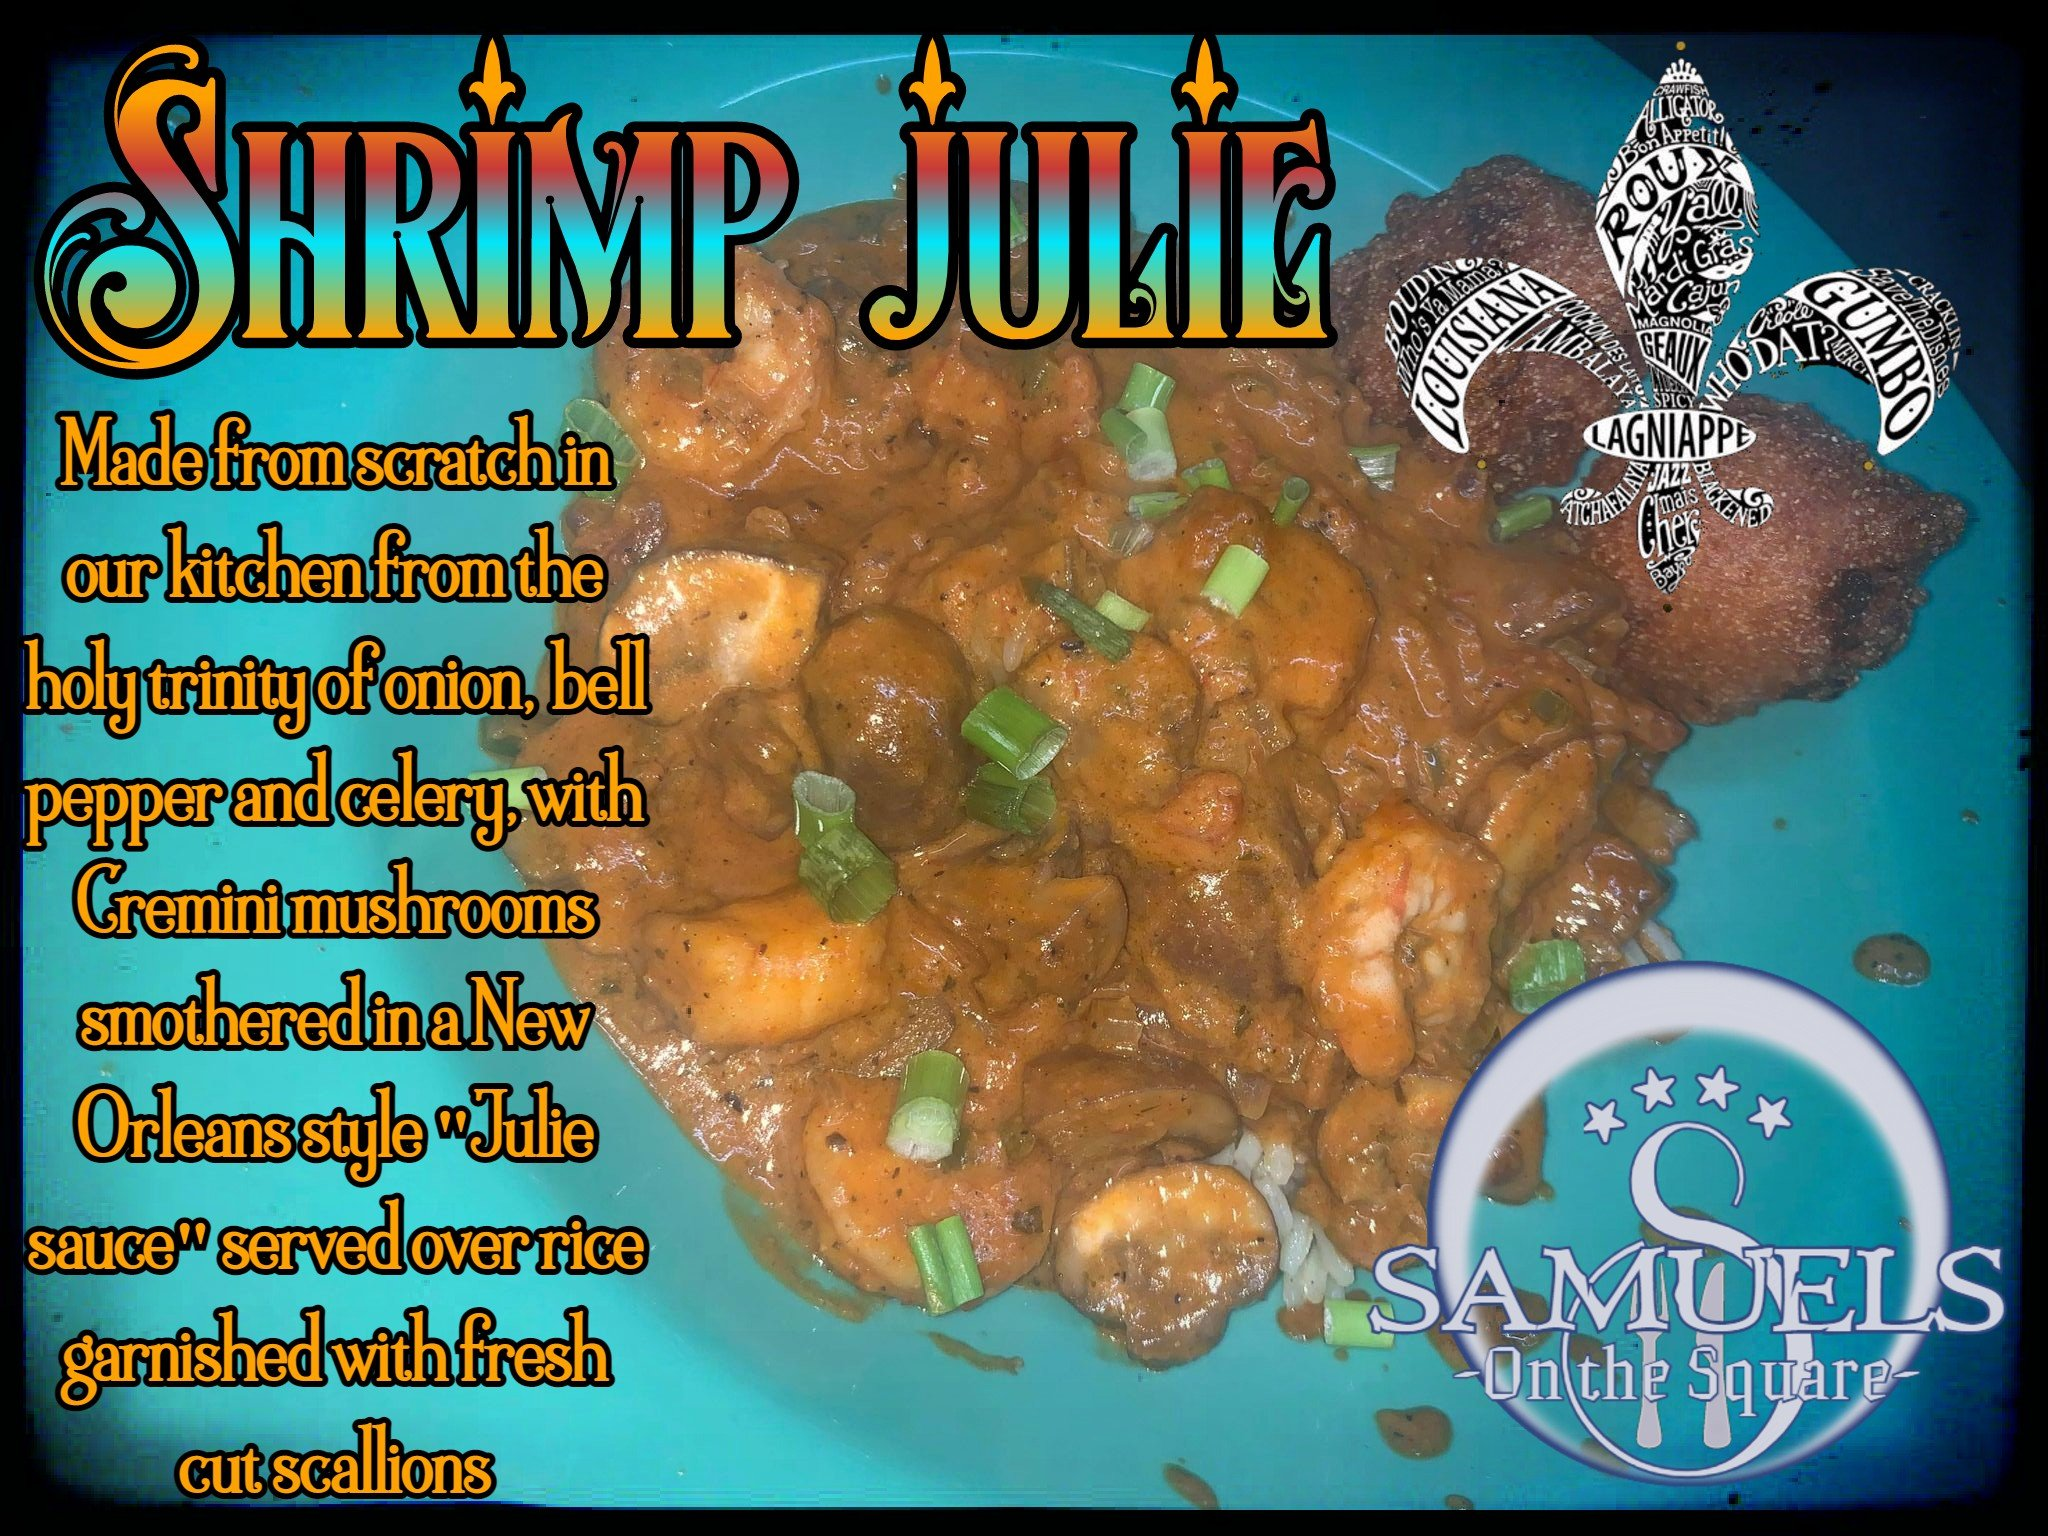 https://0201.nccdn.net/1_2/000/000/169/da6/seafood-shrimp-julie2121.jpg